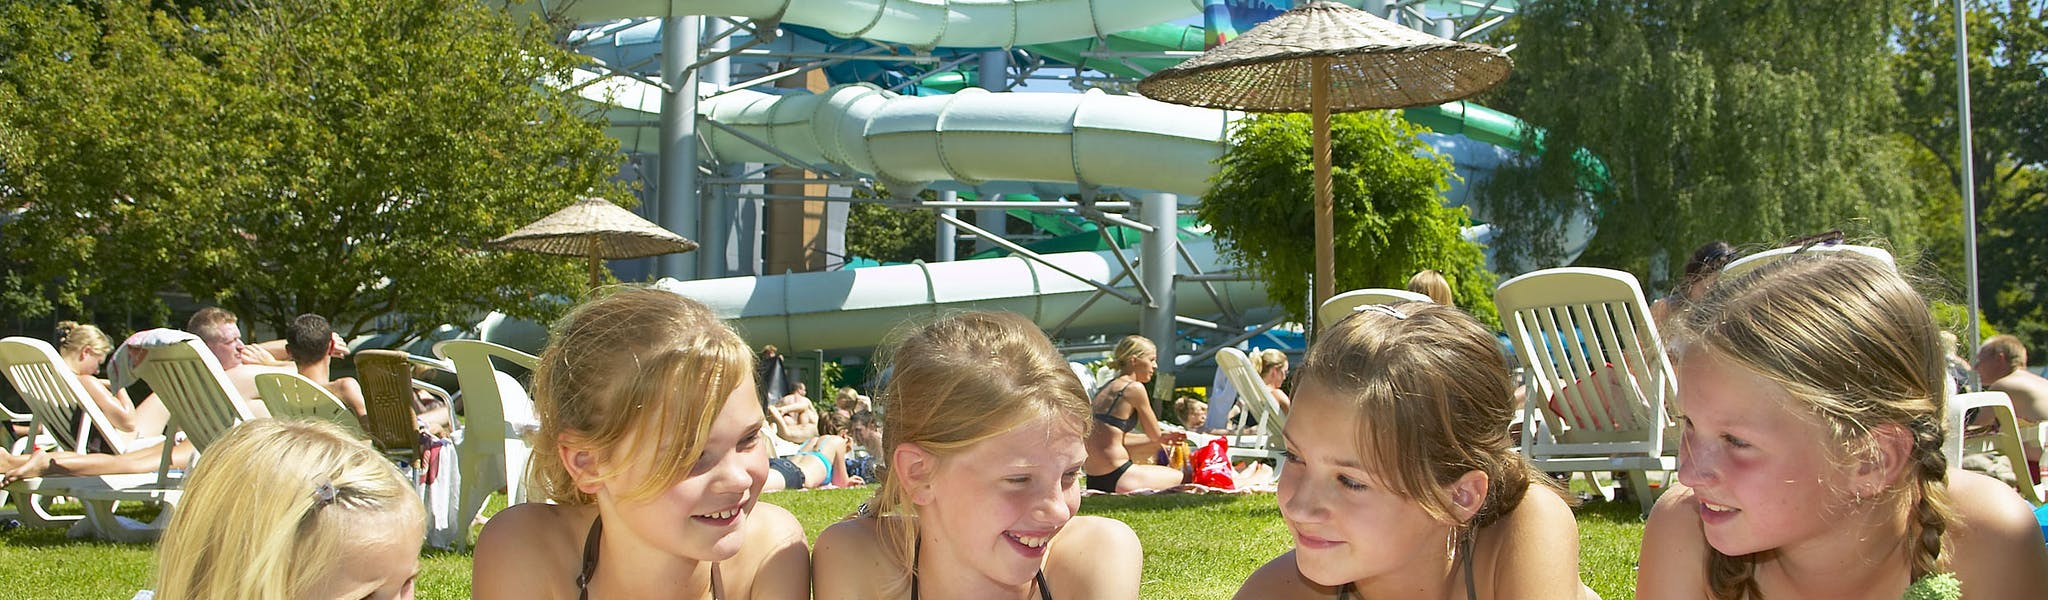 zwembad camping Duinrell